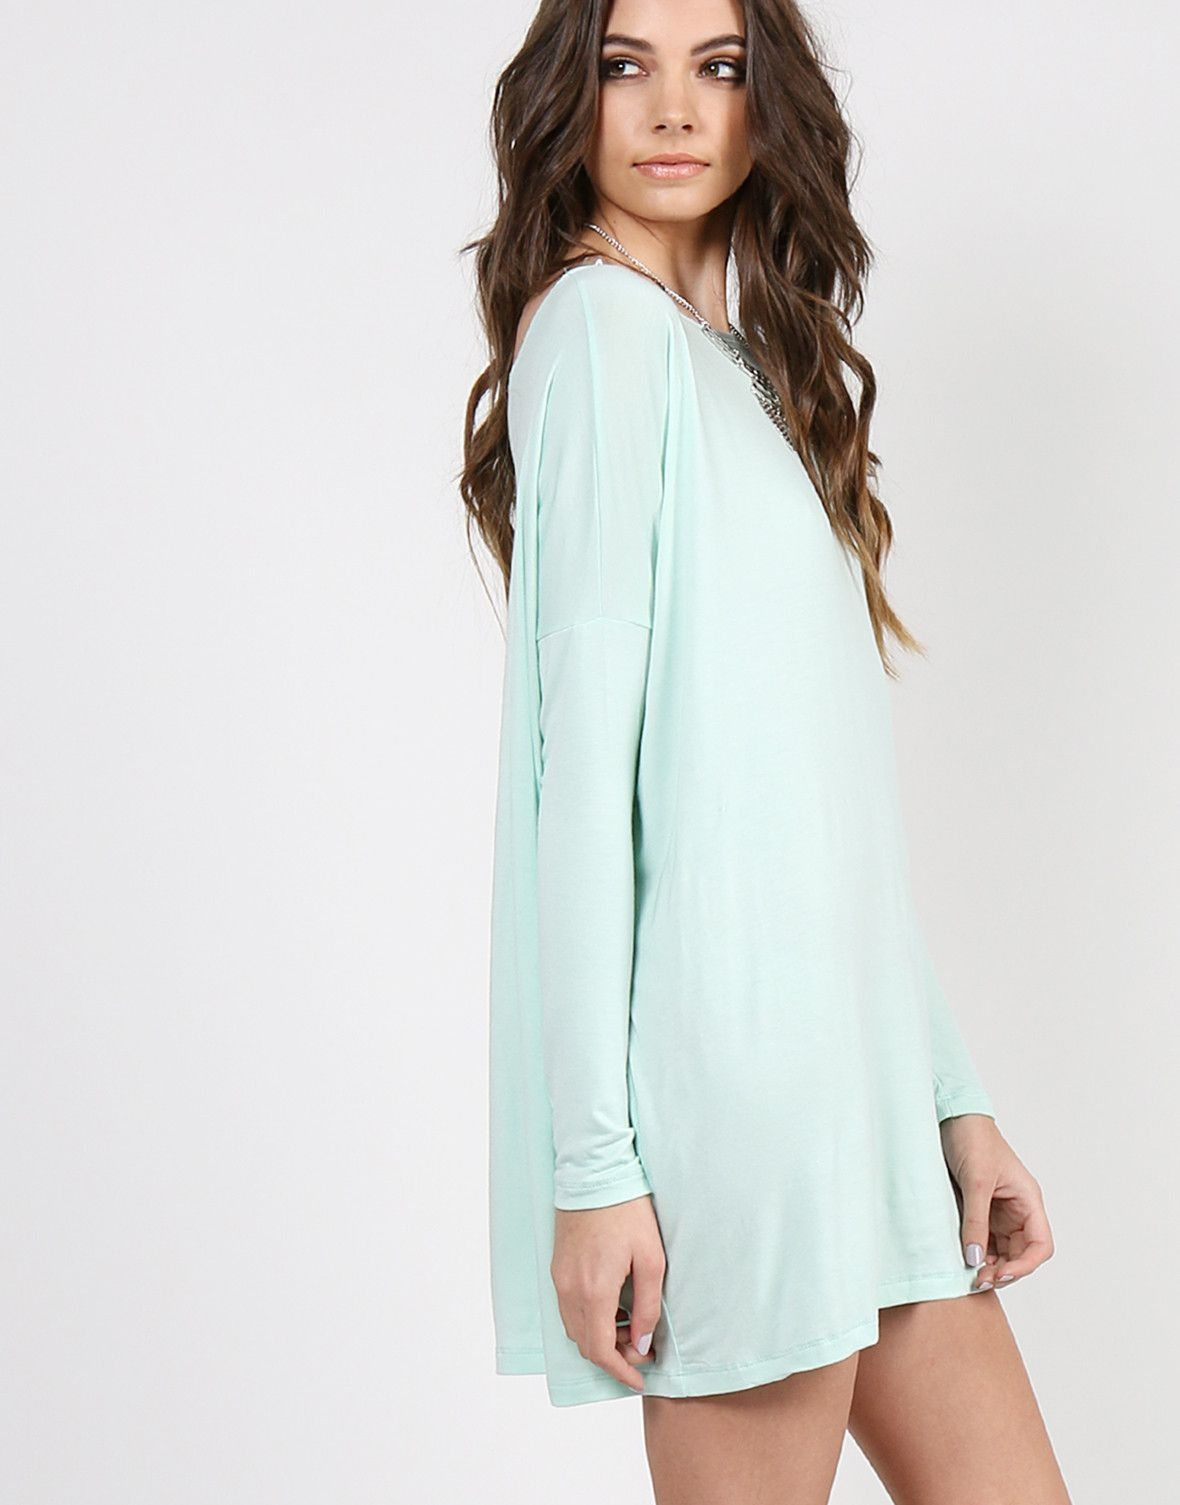 Sleeves different color than shirt dress